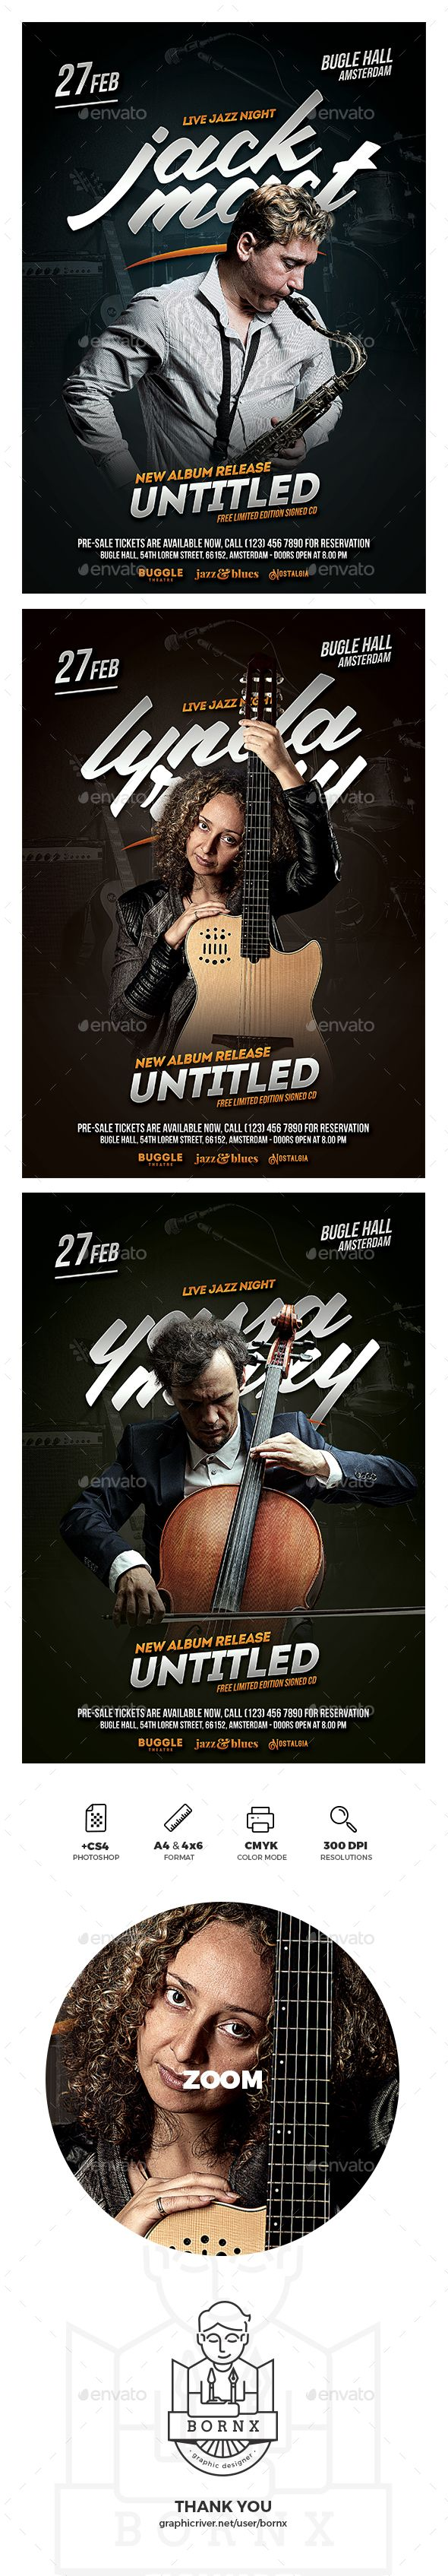 Jazz Musician Flyer Template For Photoshop With A4 4x6 Flyer